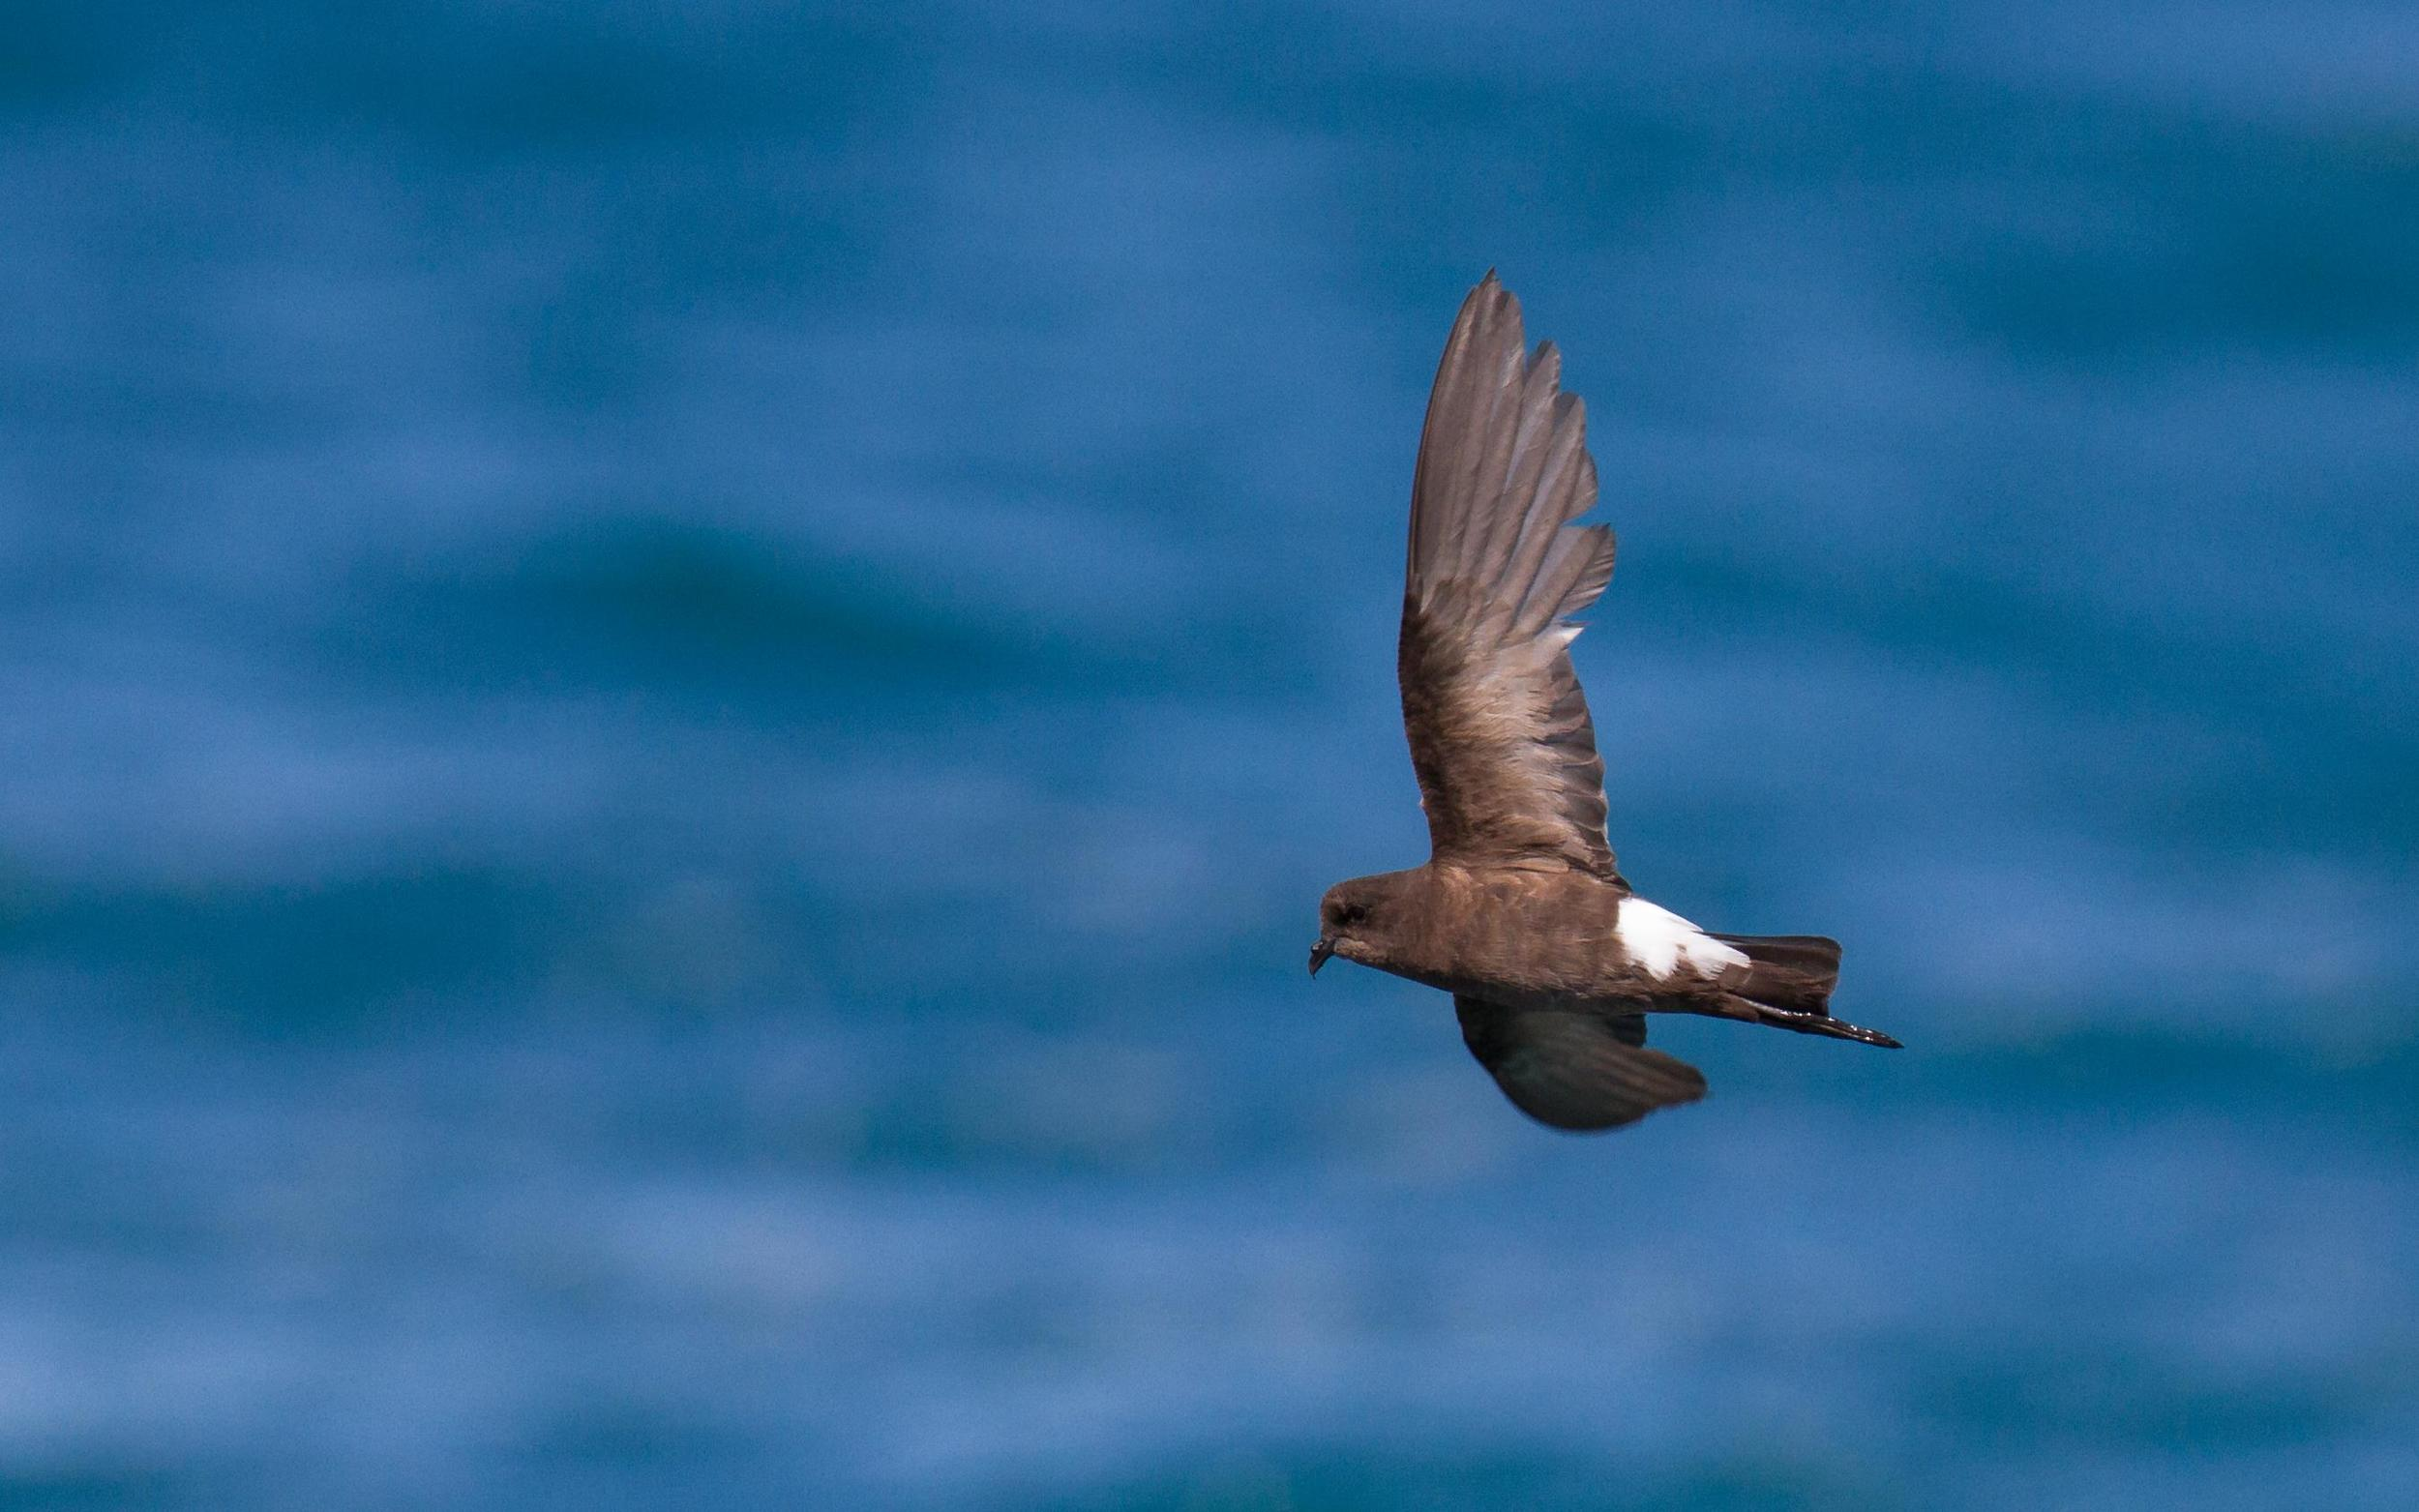 Wilson's Storm-Petrels are probably always present offshore, but rarely come close enough to see them from land. So many of them in Roebuck Bay, in perfectly calm weather, is hard to explain. Photo: Ric Else